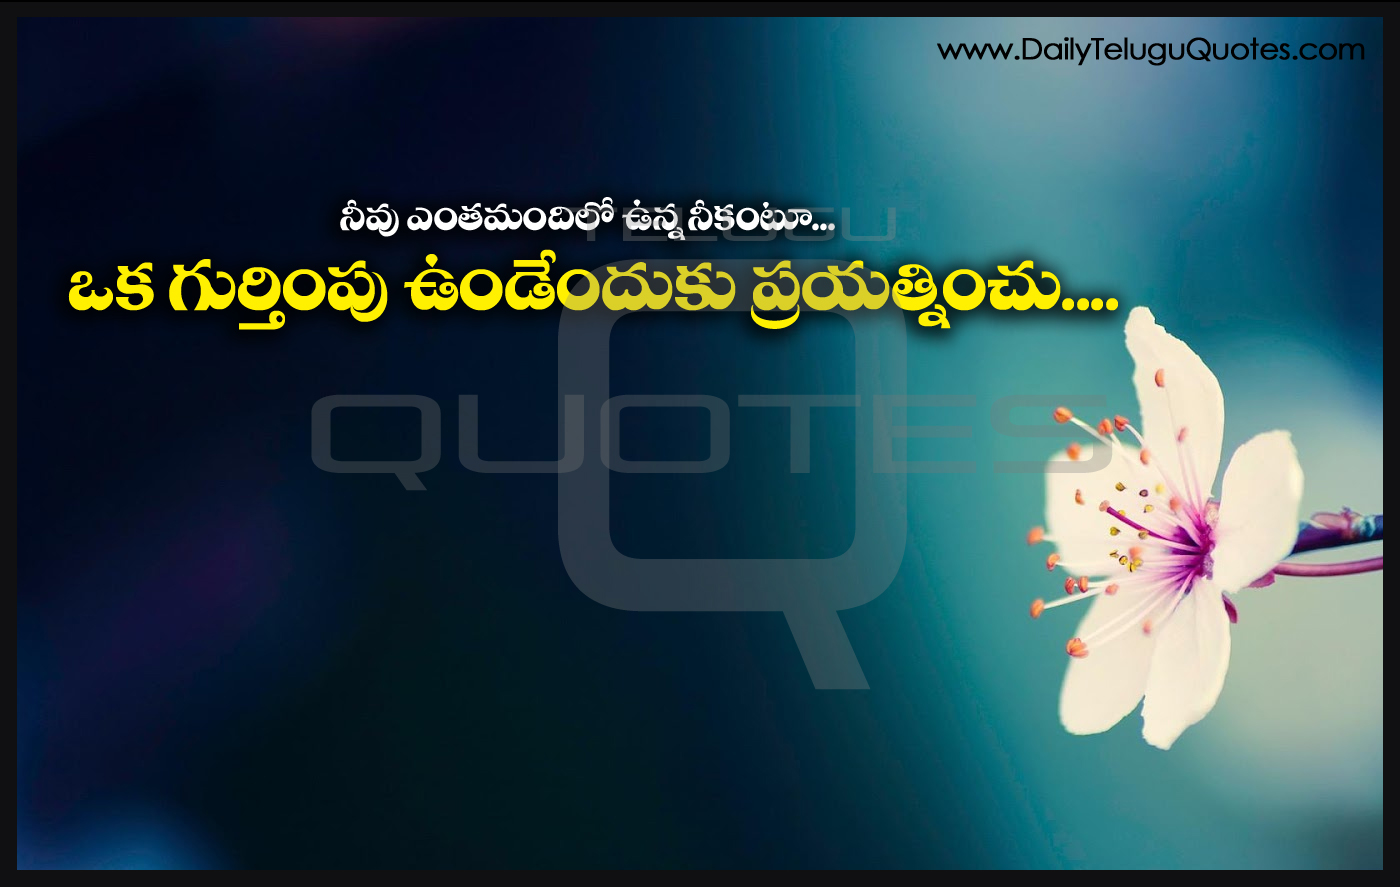 best inspiration quotes in telugu hd wallpapers life